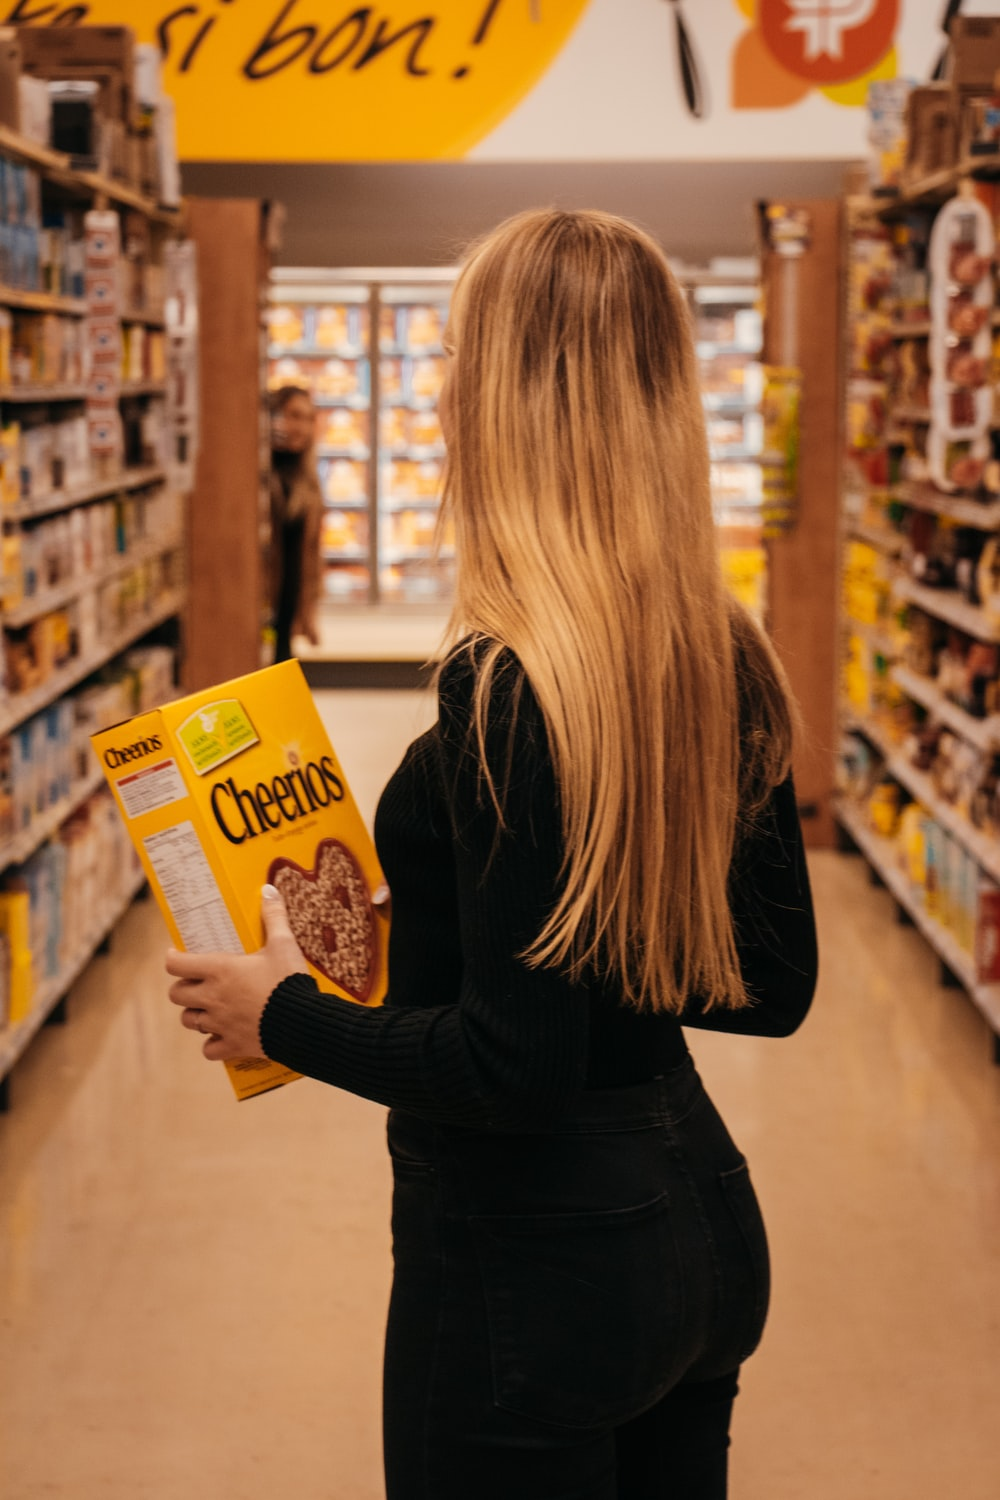 woman wearing black long-sleeved shirt holding Cheerios cereal box standing